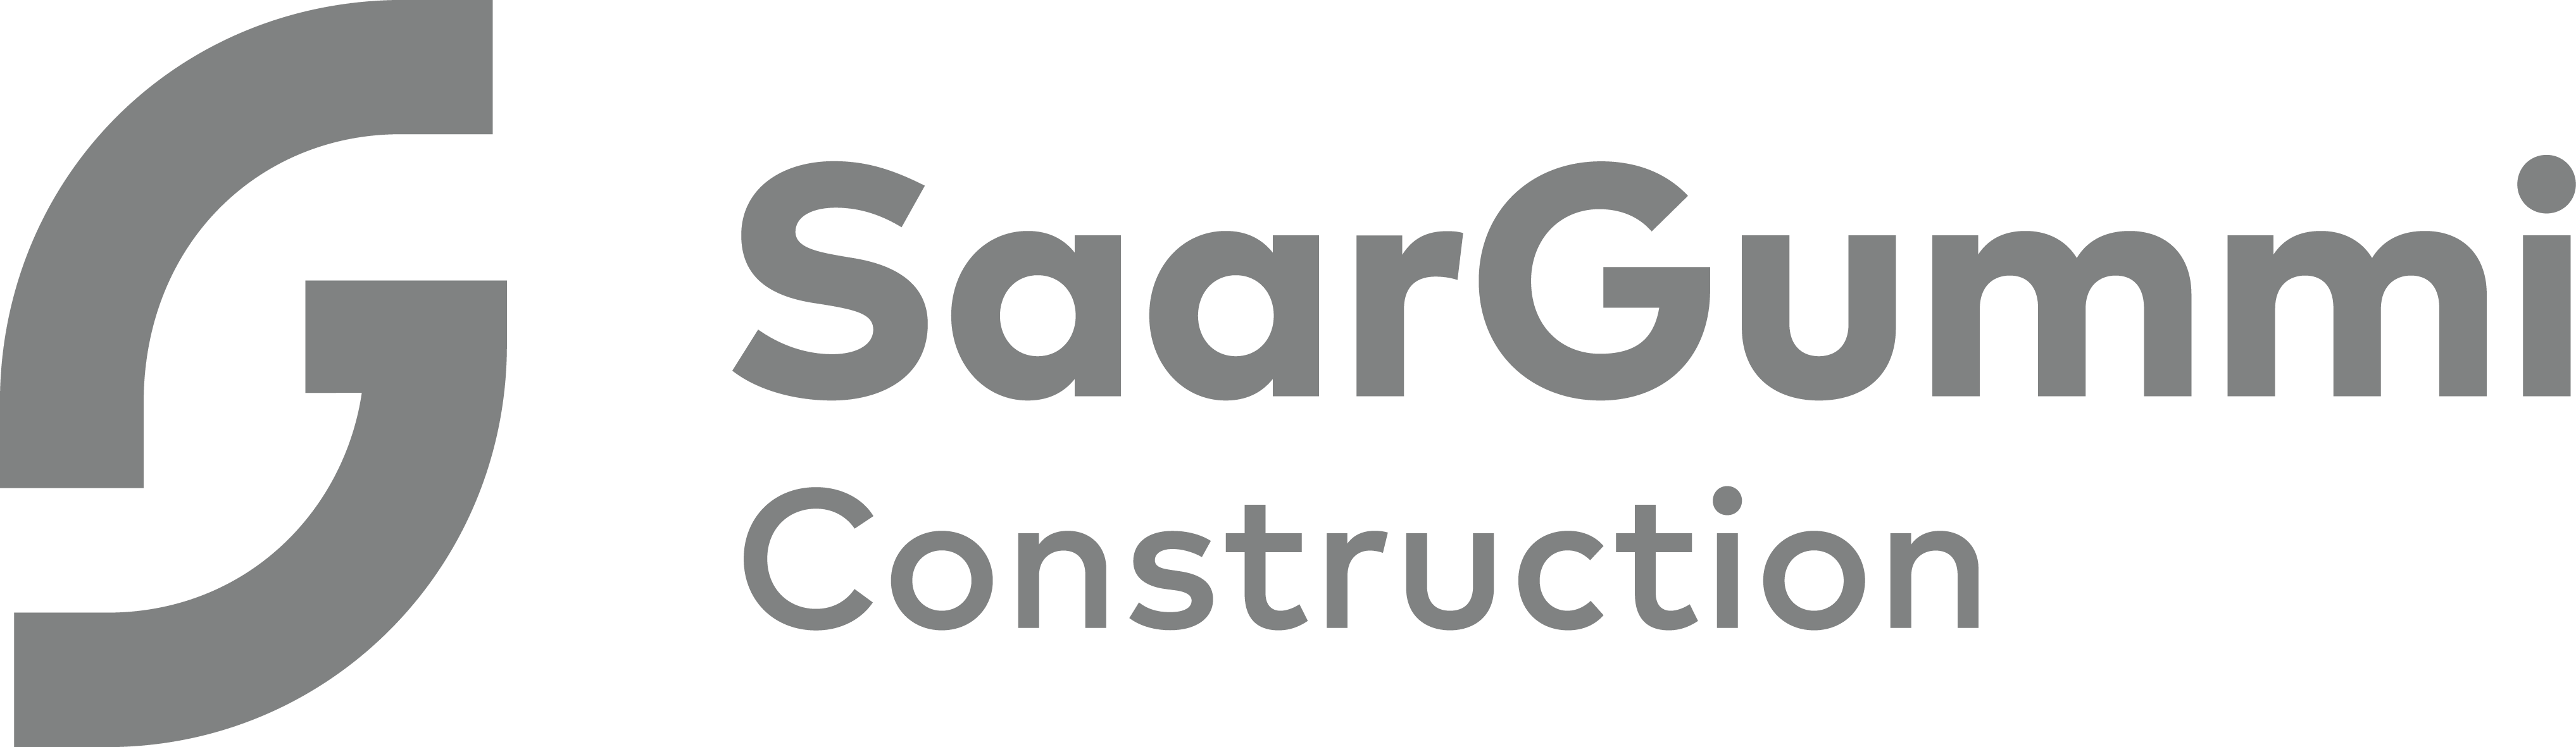 Sgc logo sg construction rgb 1